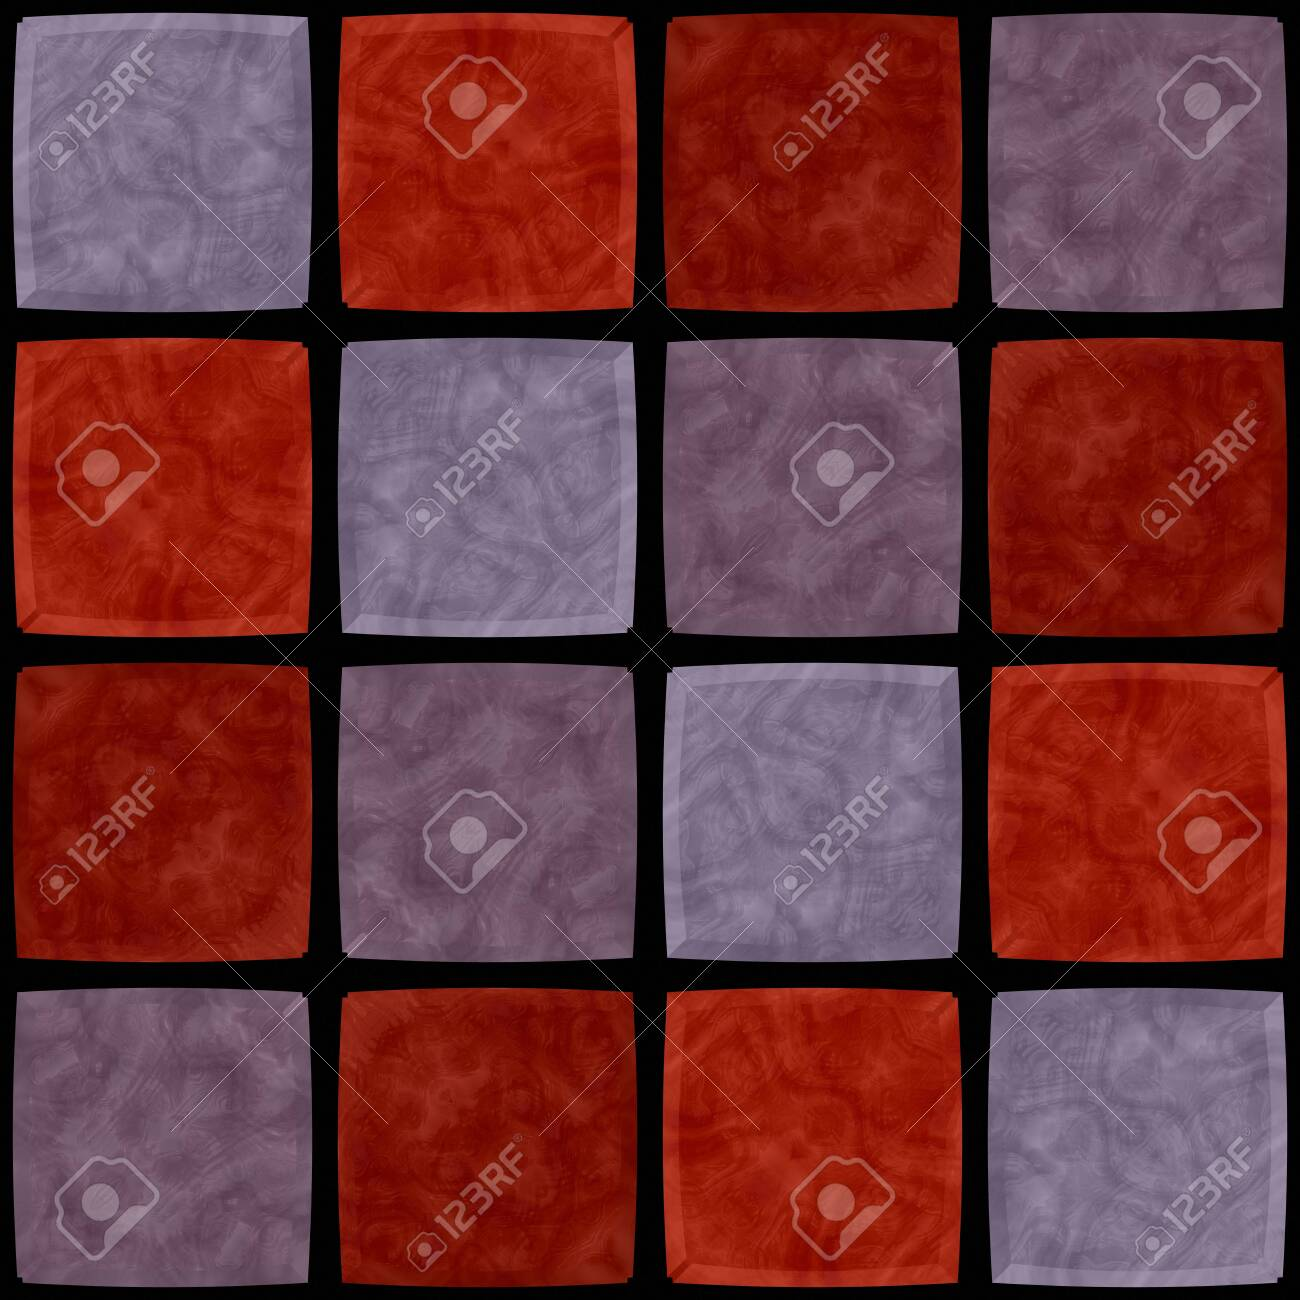 abstract red purple mosaic tile stock photo picture and royalty free image image 119805552